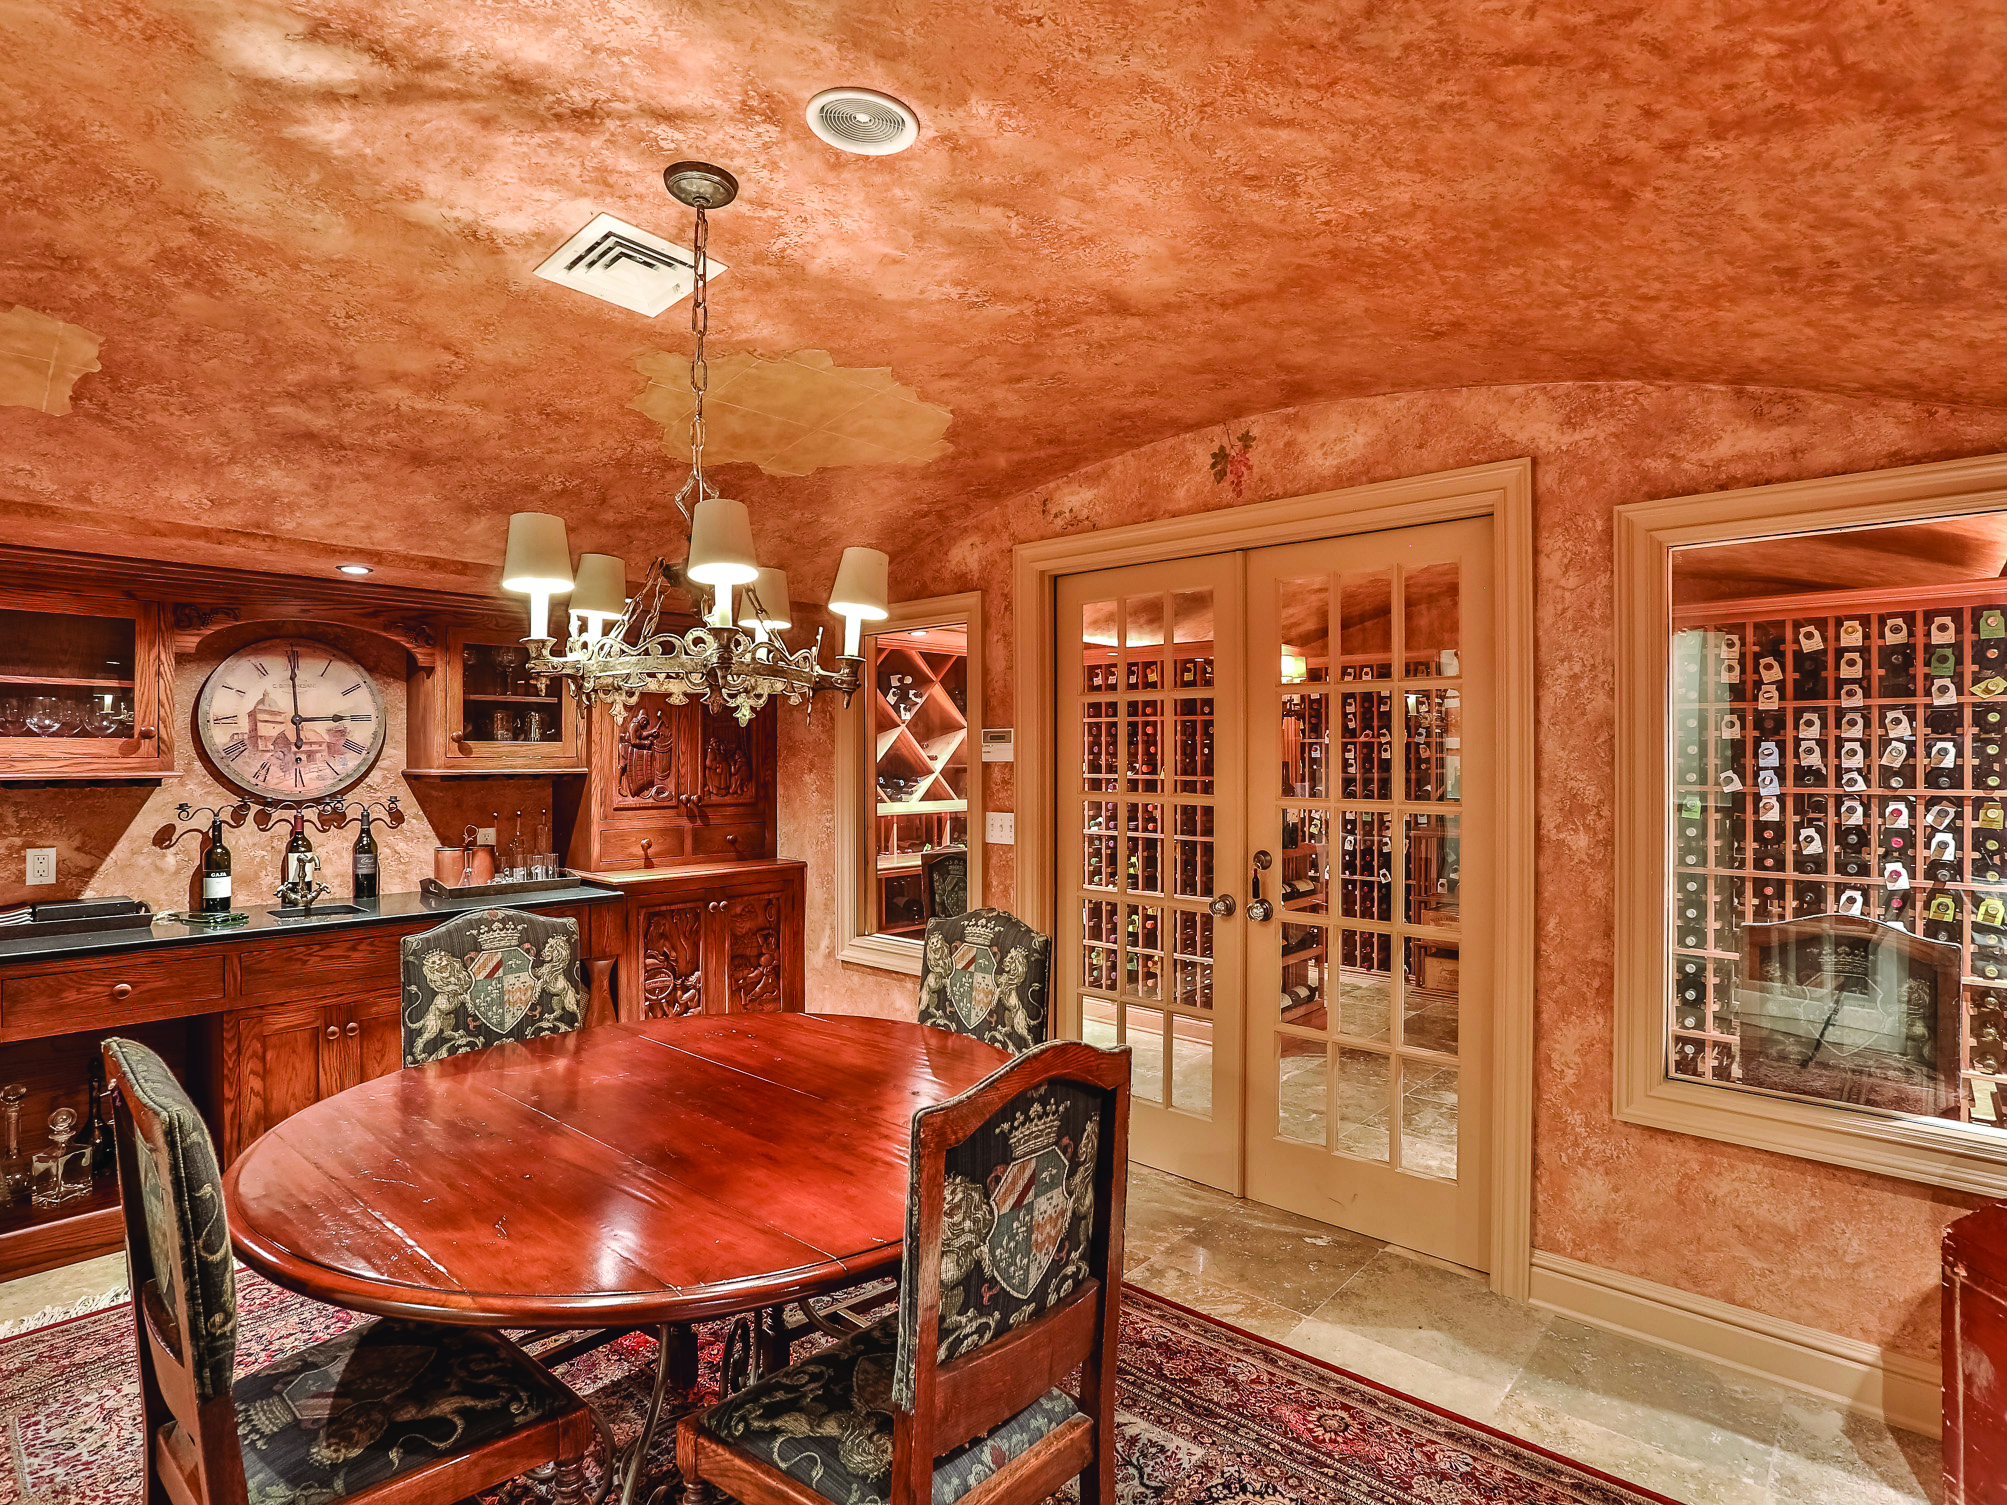 u201cToday wine cellars boast the most exquisite designs. Some come with their own dining salons and side rooms with racks for displaying wine collectionsu201d ... & The Timeless Art of Wine | William Pitt Sothebyu0027s Realty